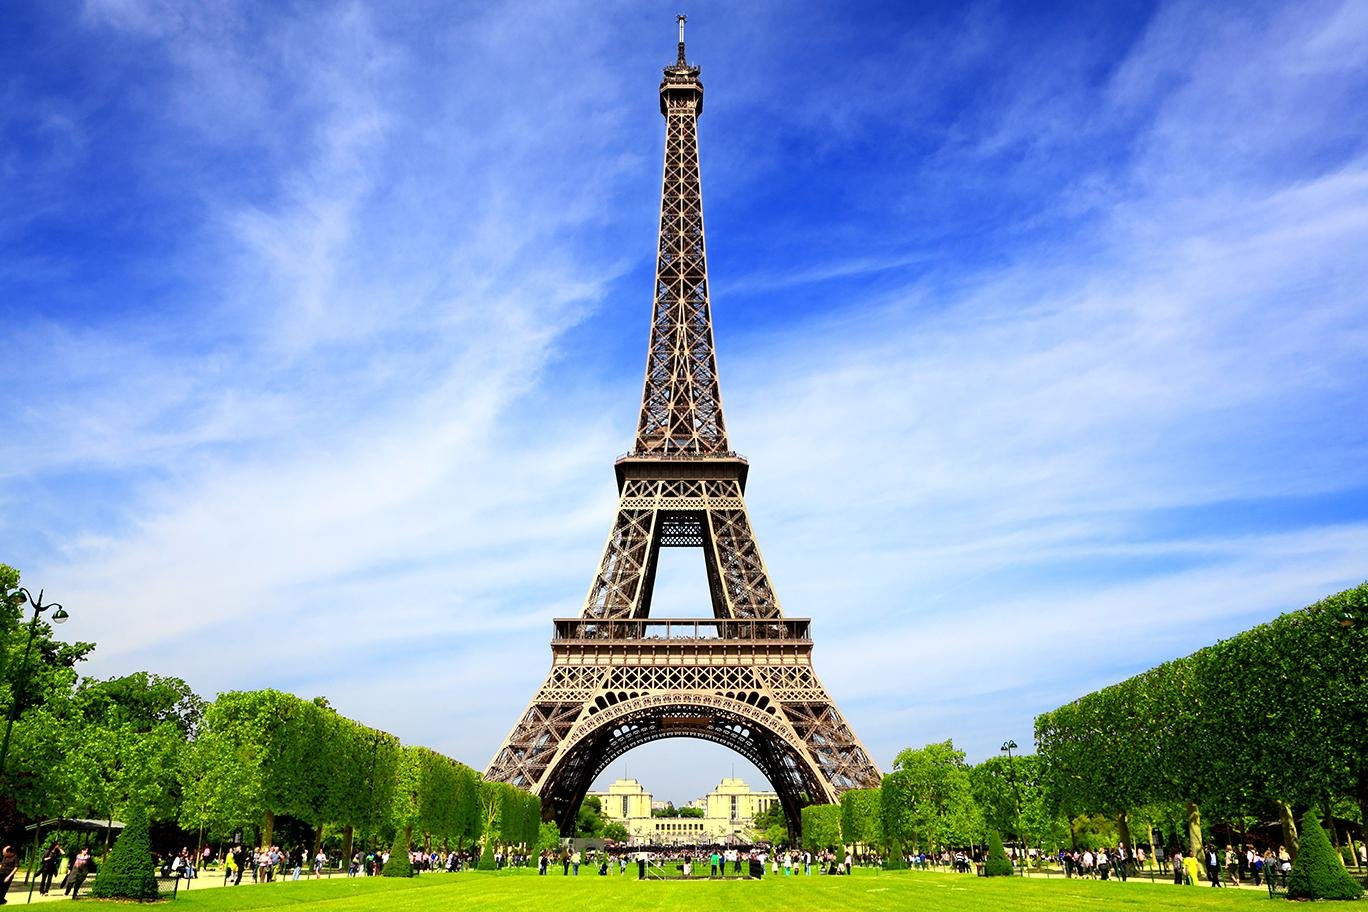 Discover must see attractions in Paris like the Eiffel Tower with France tours & excursions